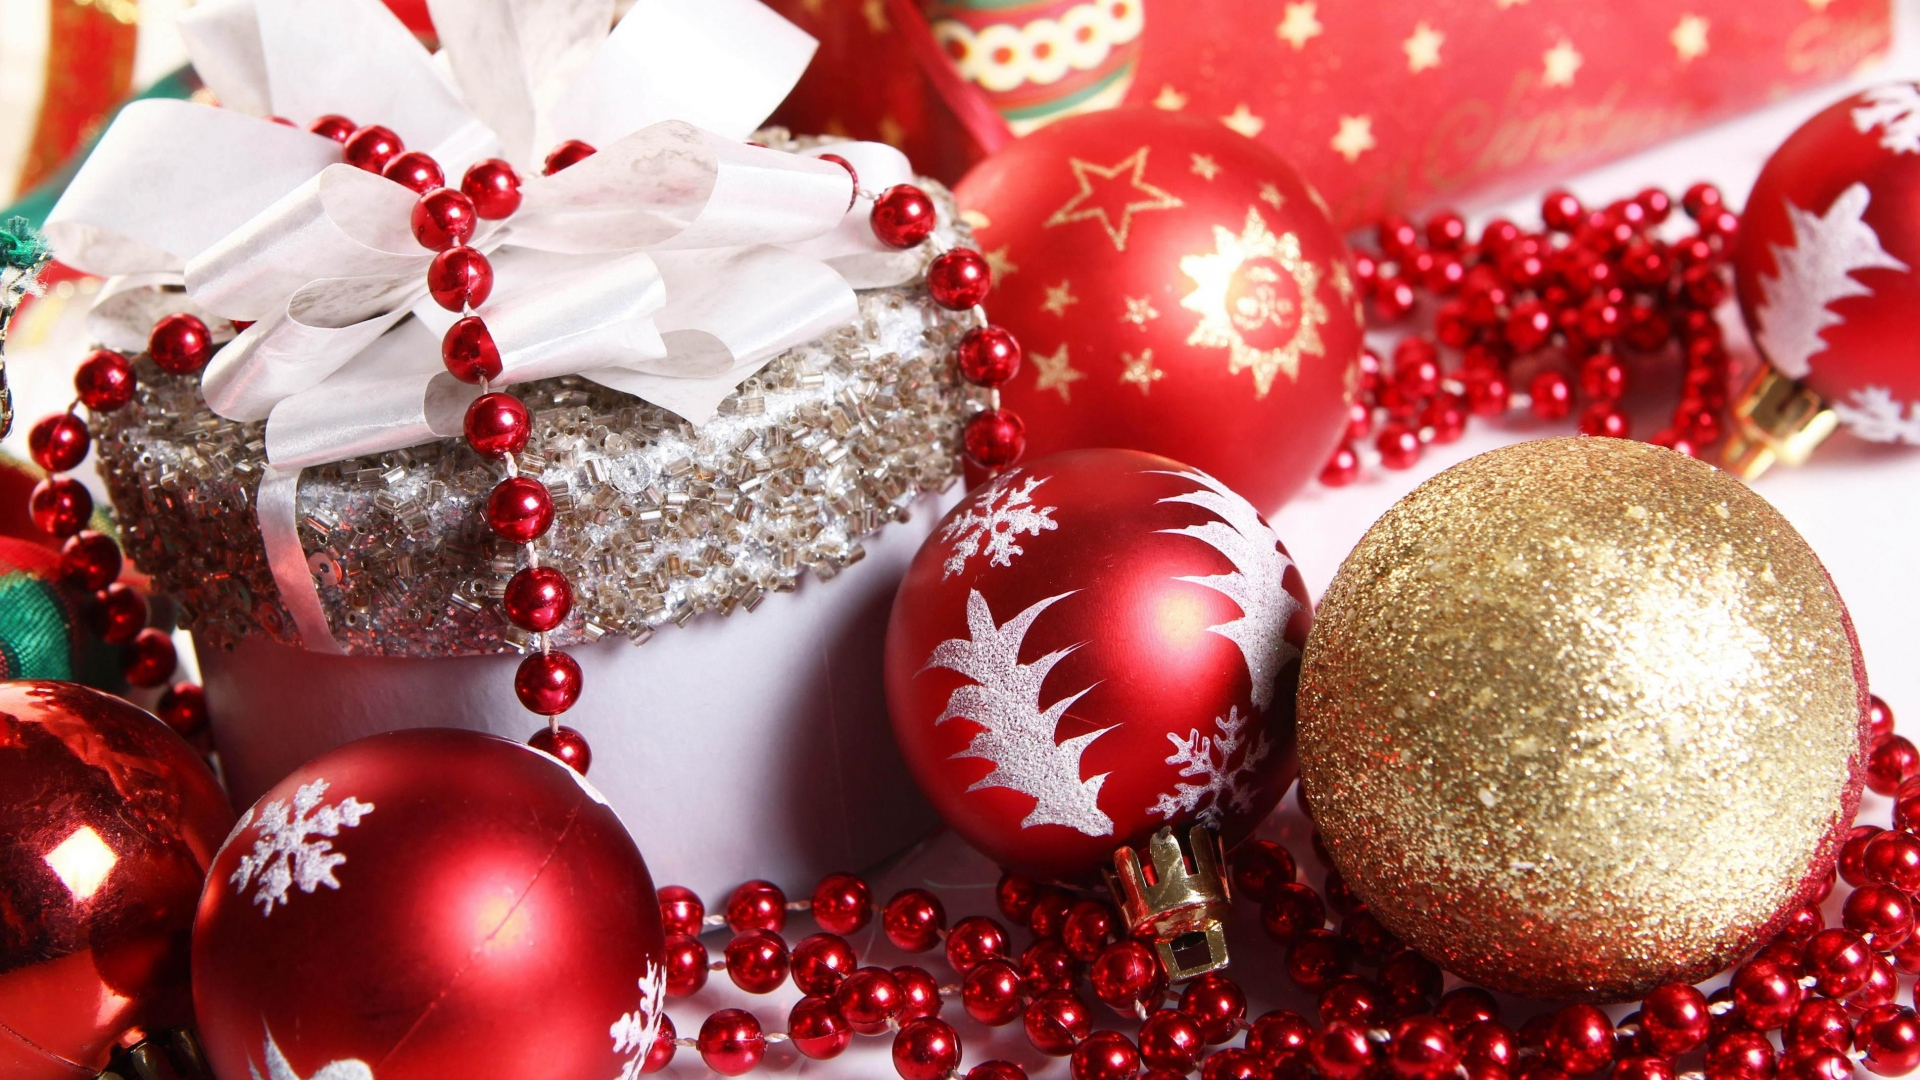 christmas_decorations_gifts_decorations_new_year_holiday_mood_36370_1920x1080